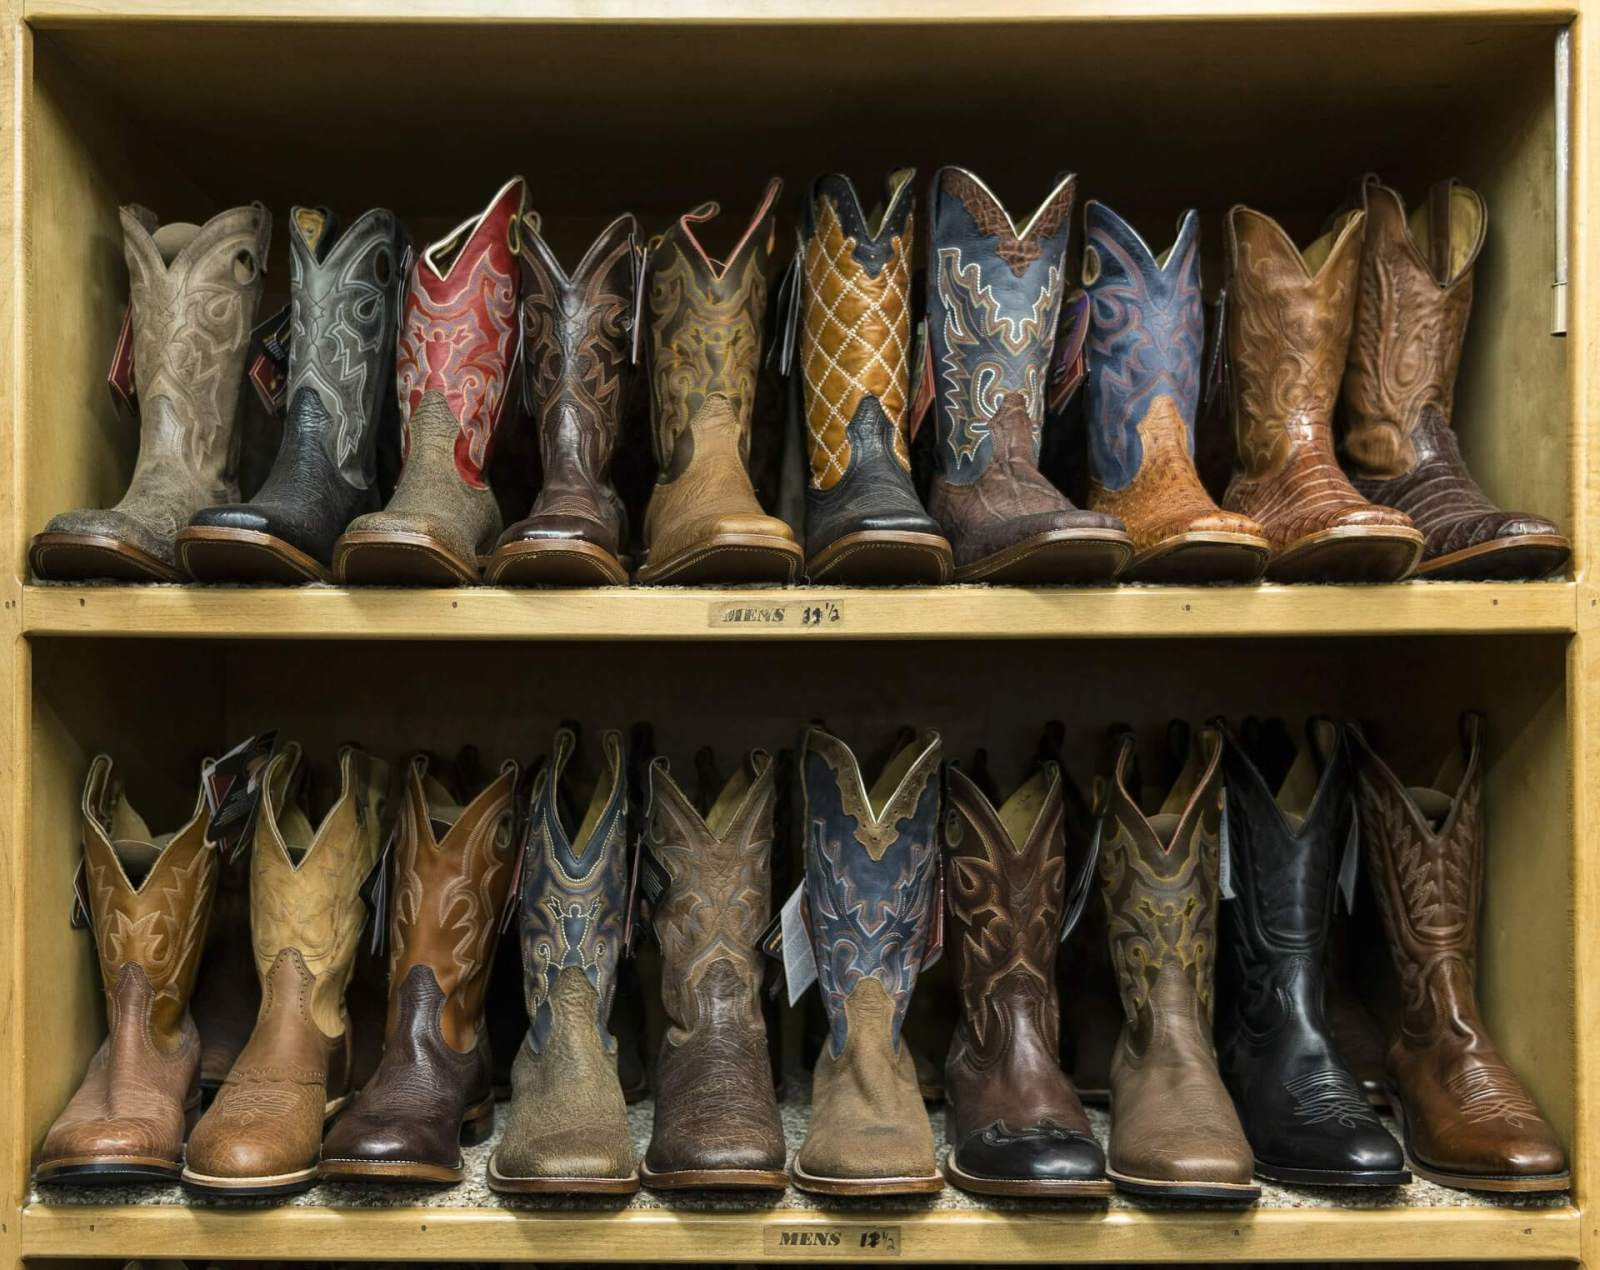 Two racks of cowboy boots